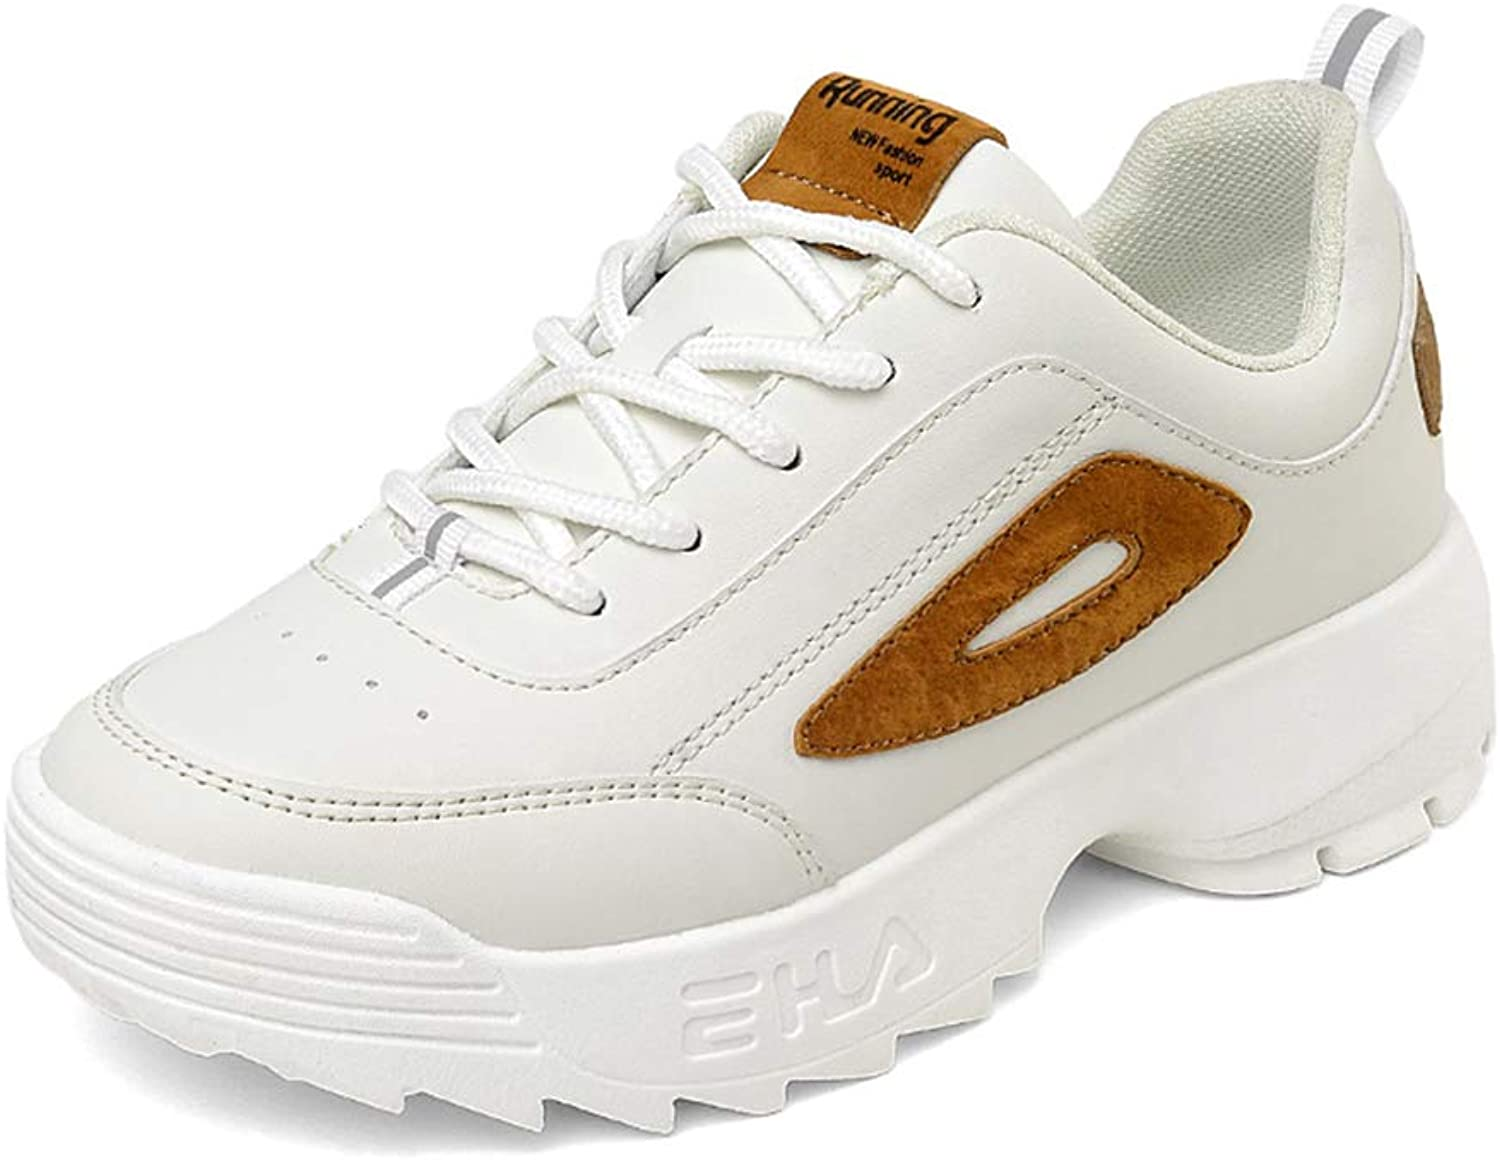 Sport Women's Lace-up Sneaker Walking Comfortable Casual Fitness shoes (color   Beige, Size   37)